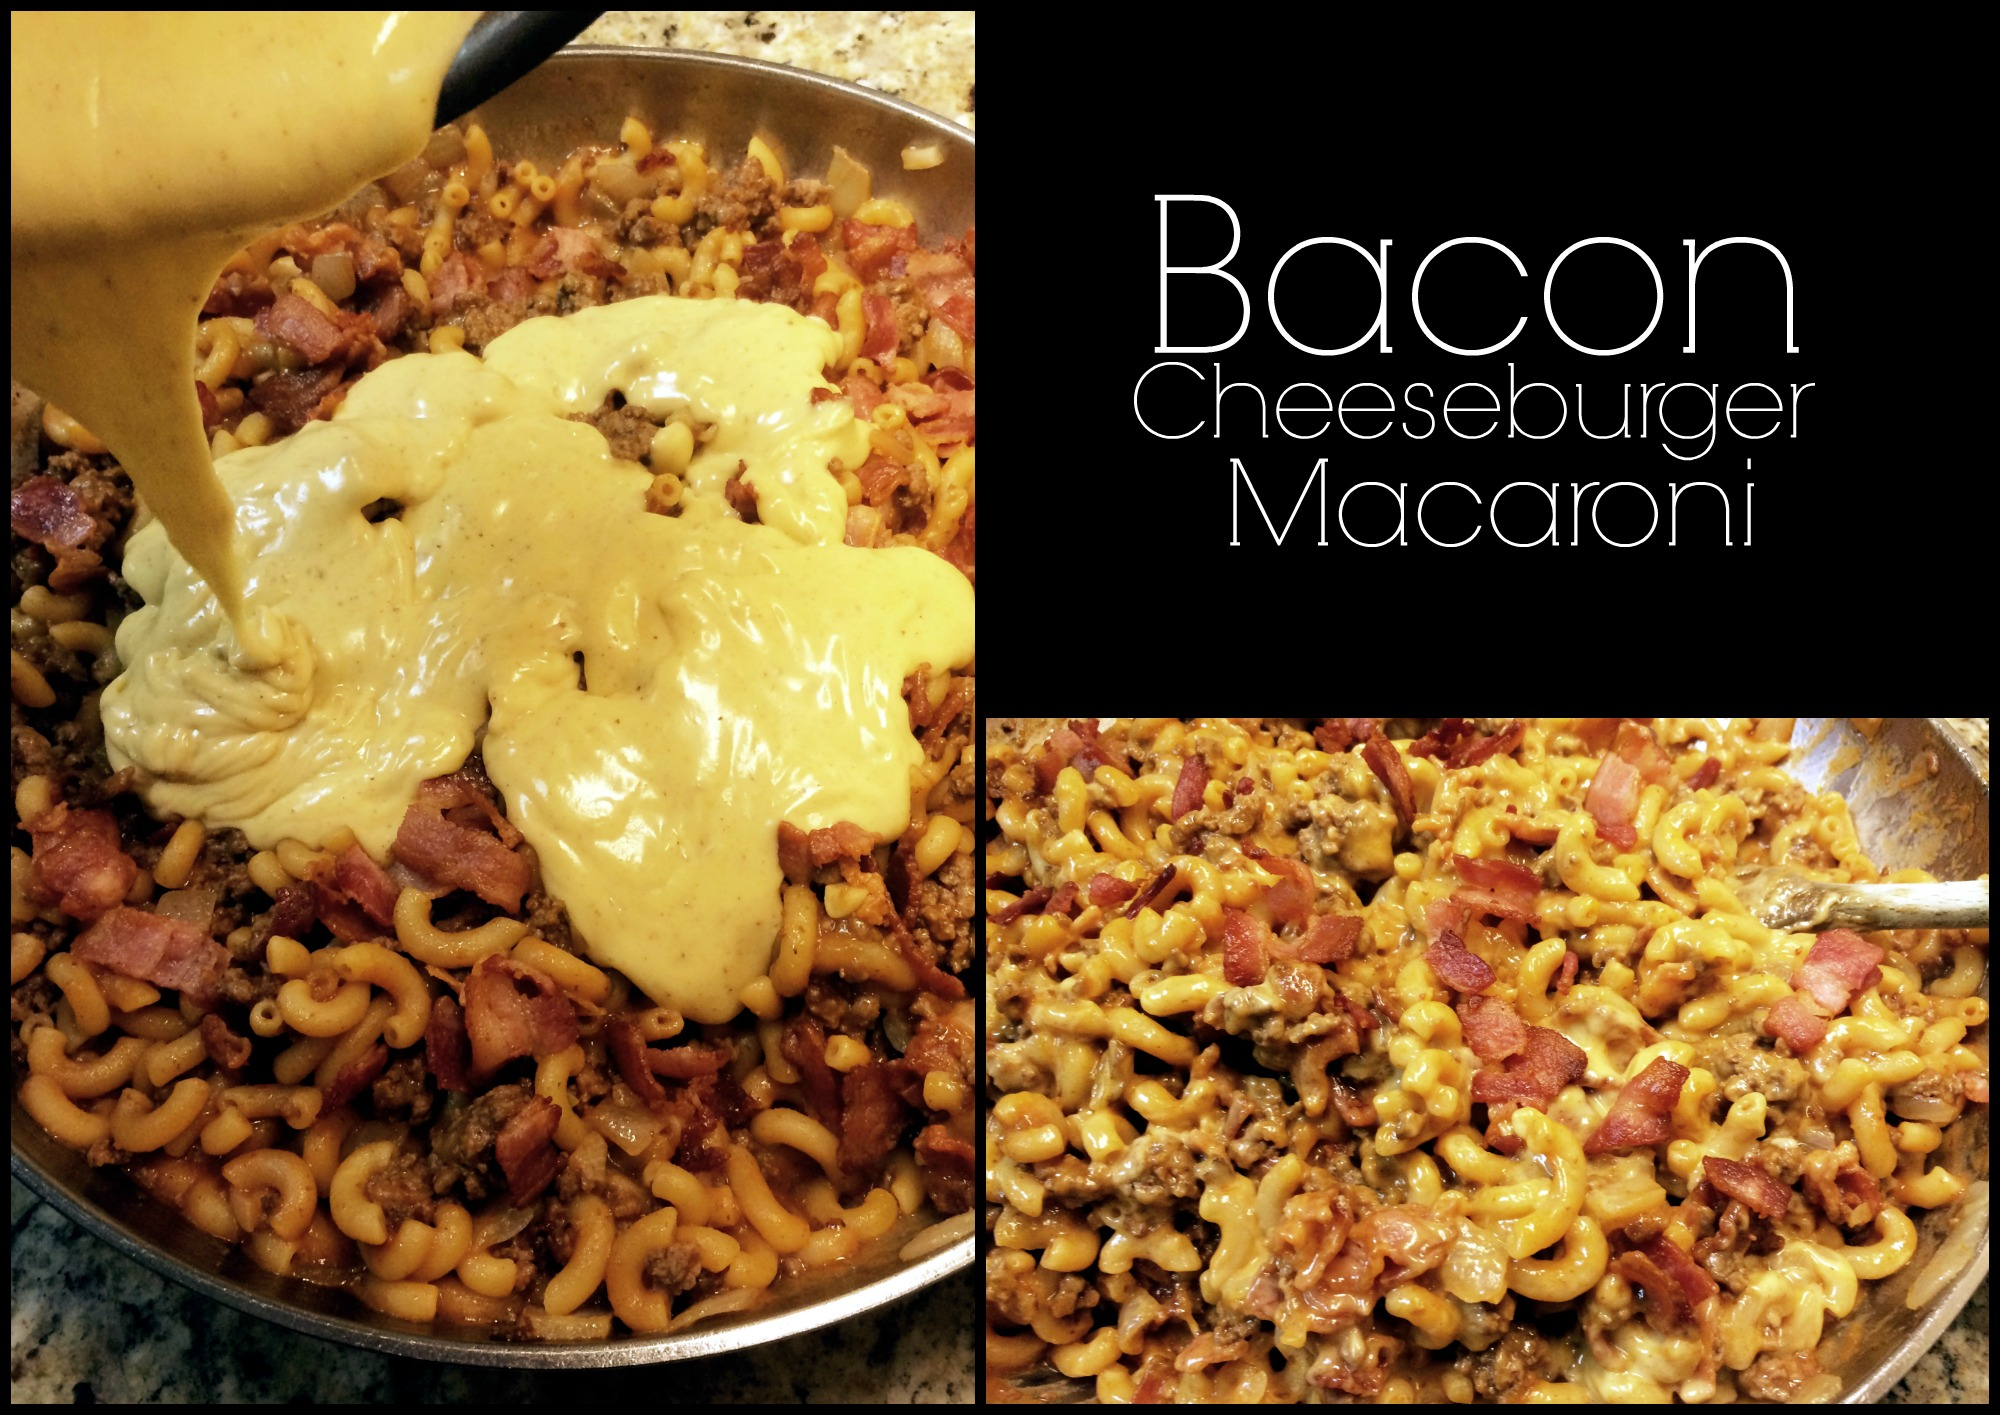 Bacon Cheeseburger Macaroni - Aunt Bee's Recipes